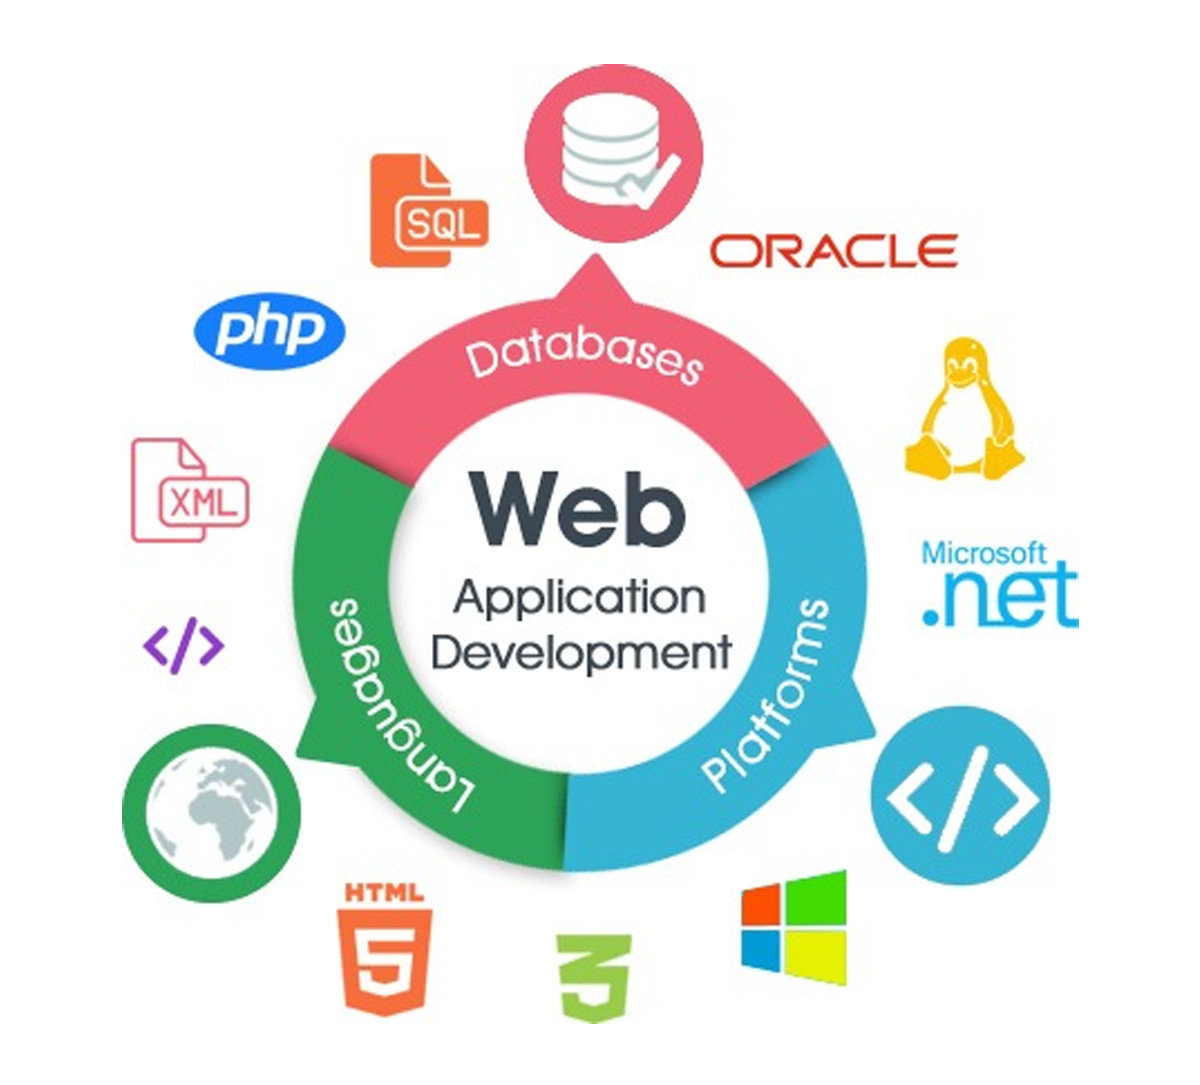 http://arksstechnologies.com/wp-content/upload/2018/06/web-development-application-1.png